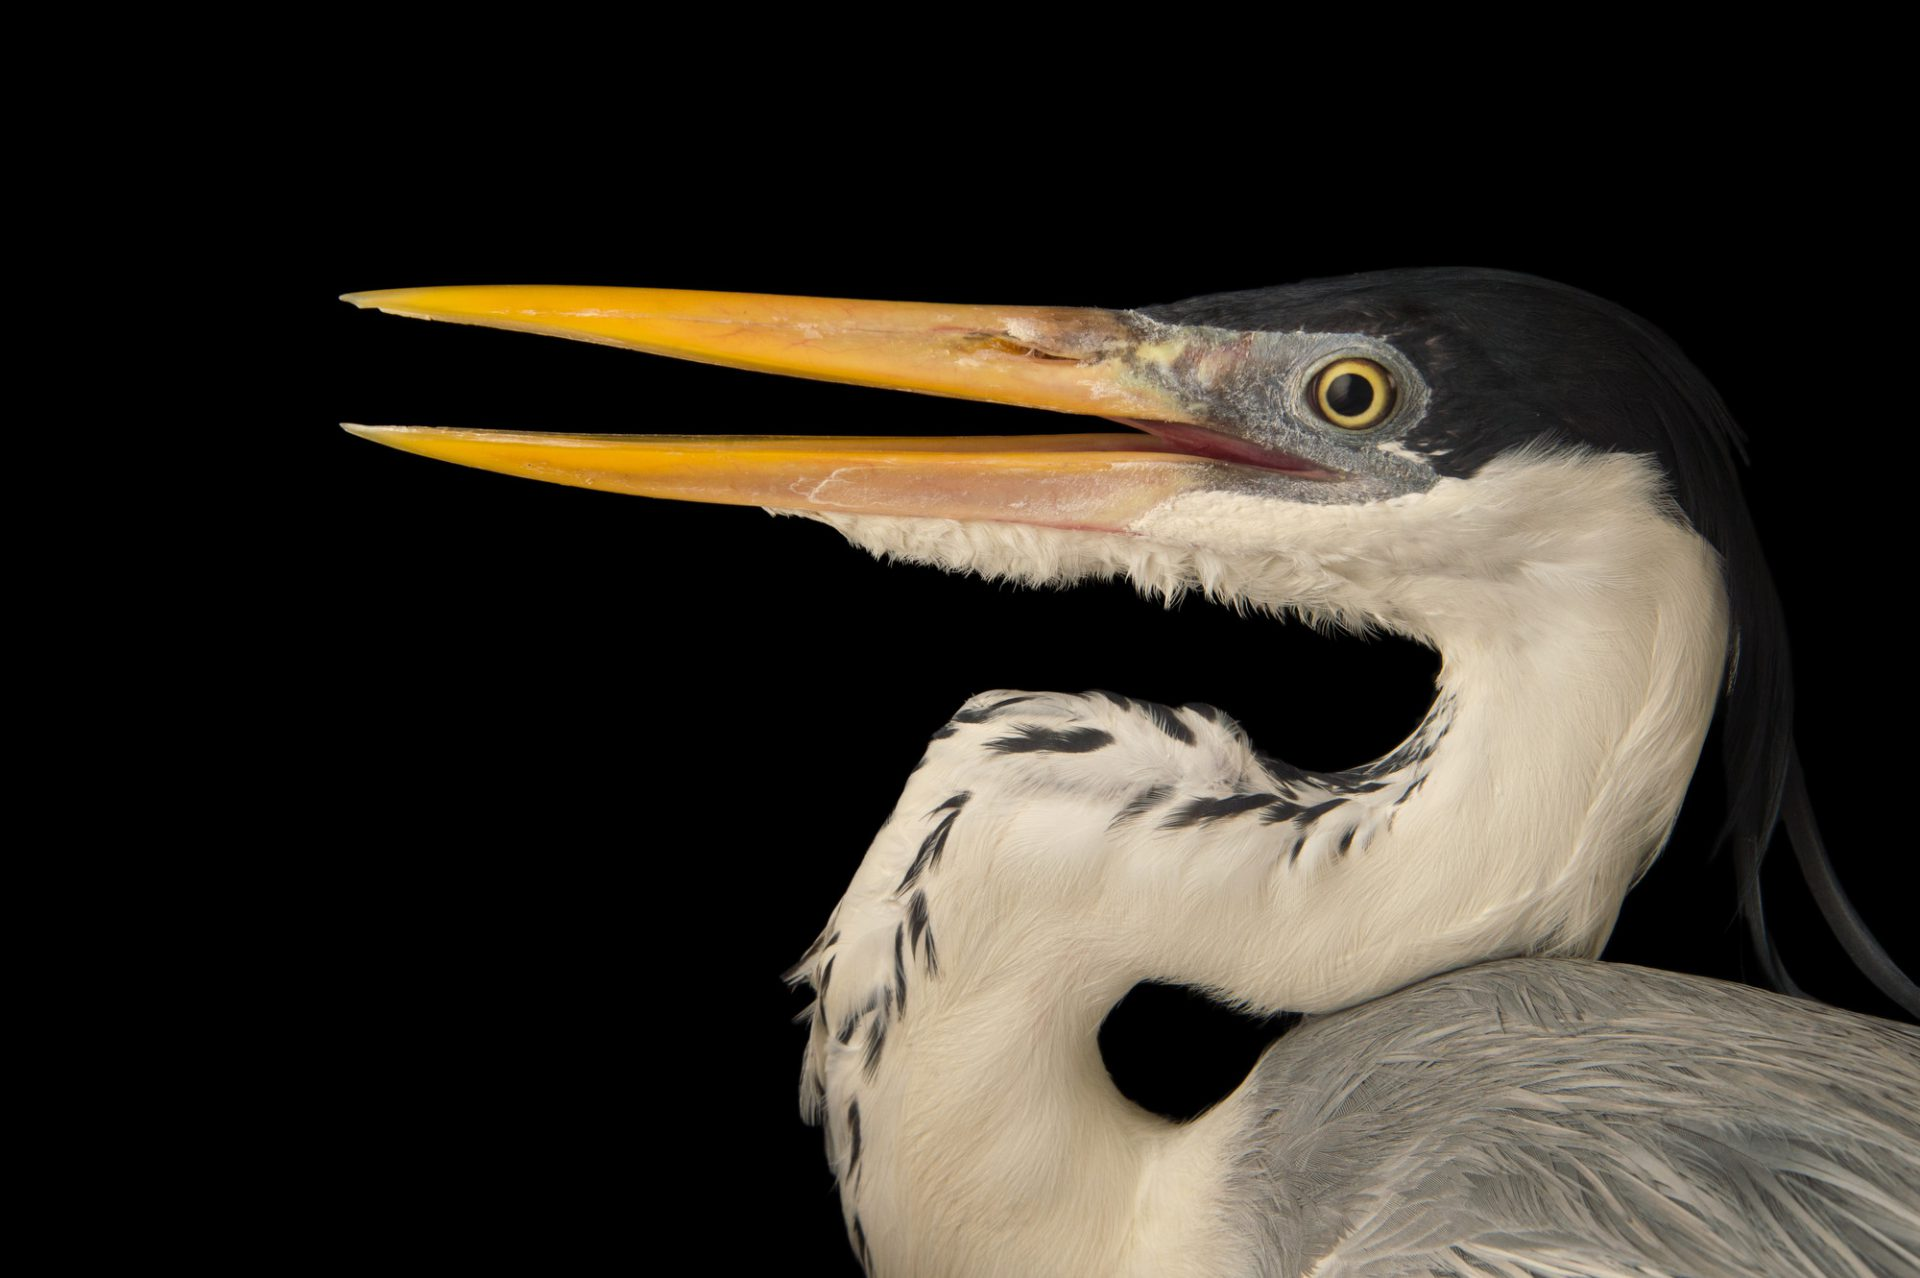 Photo: A cocoi heron (Ardea cocoi) at the National Aviary breeding center.